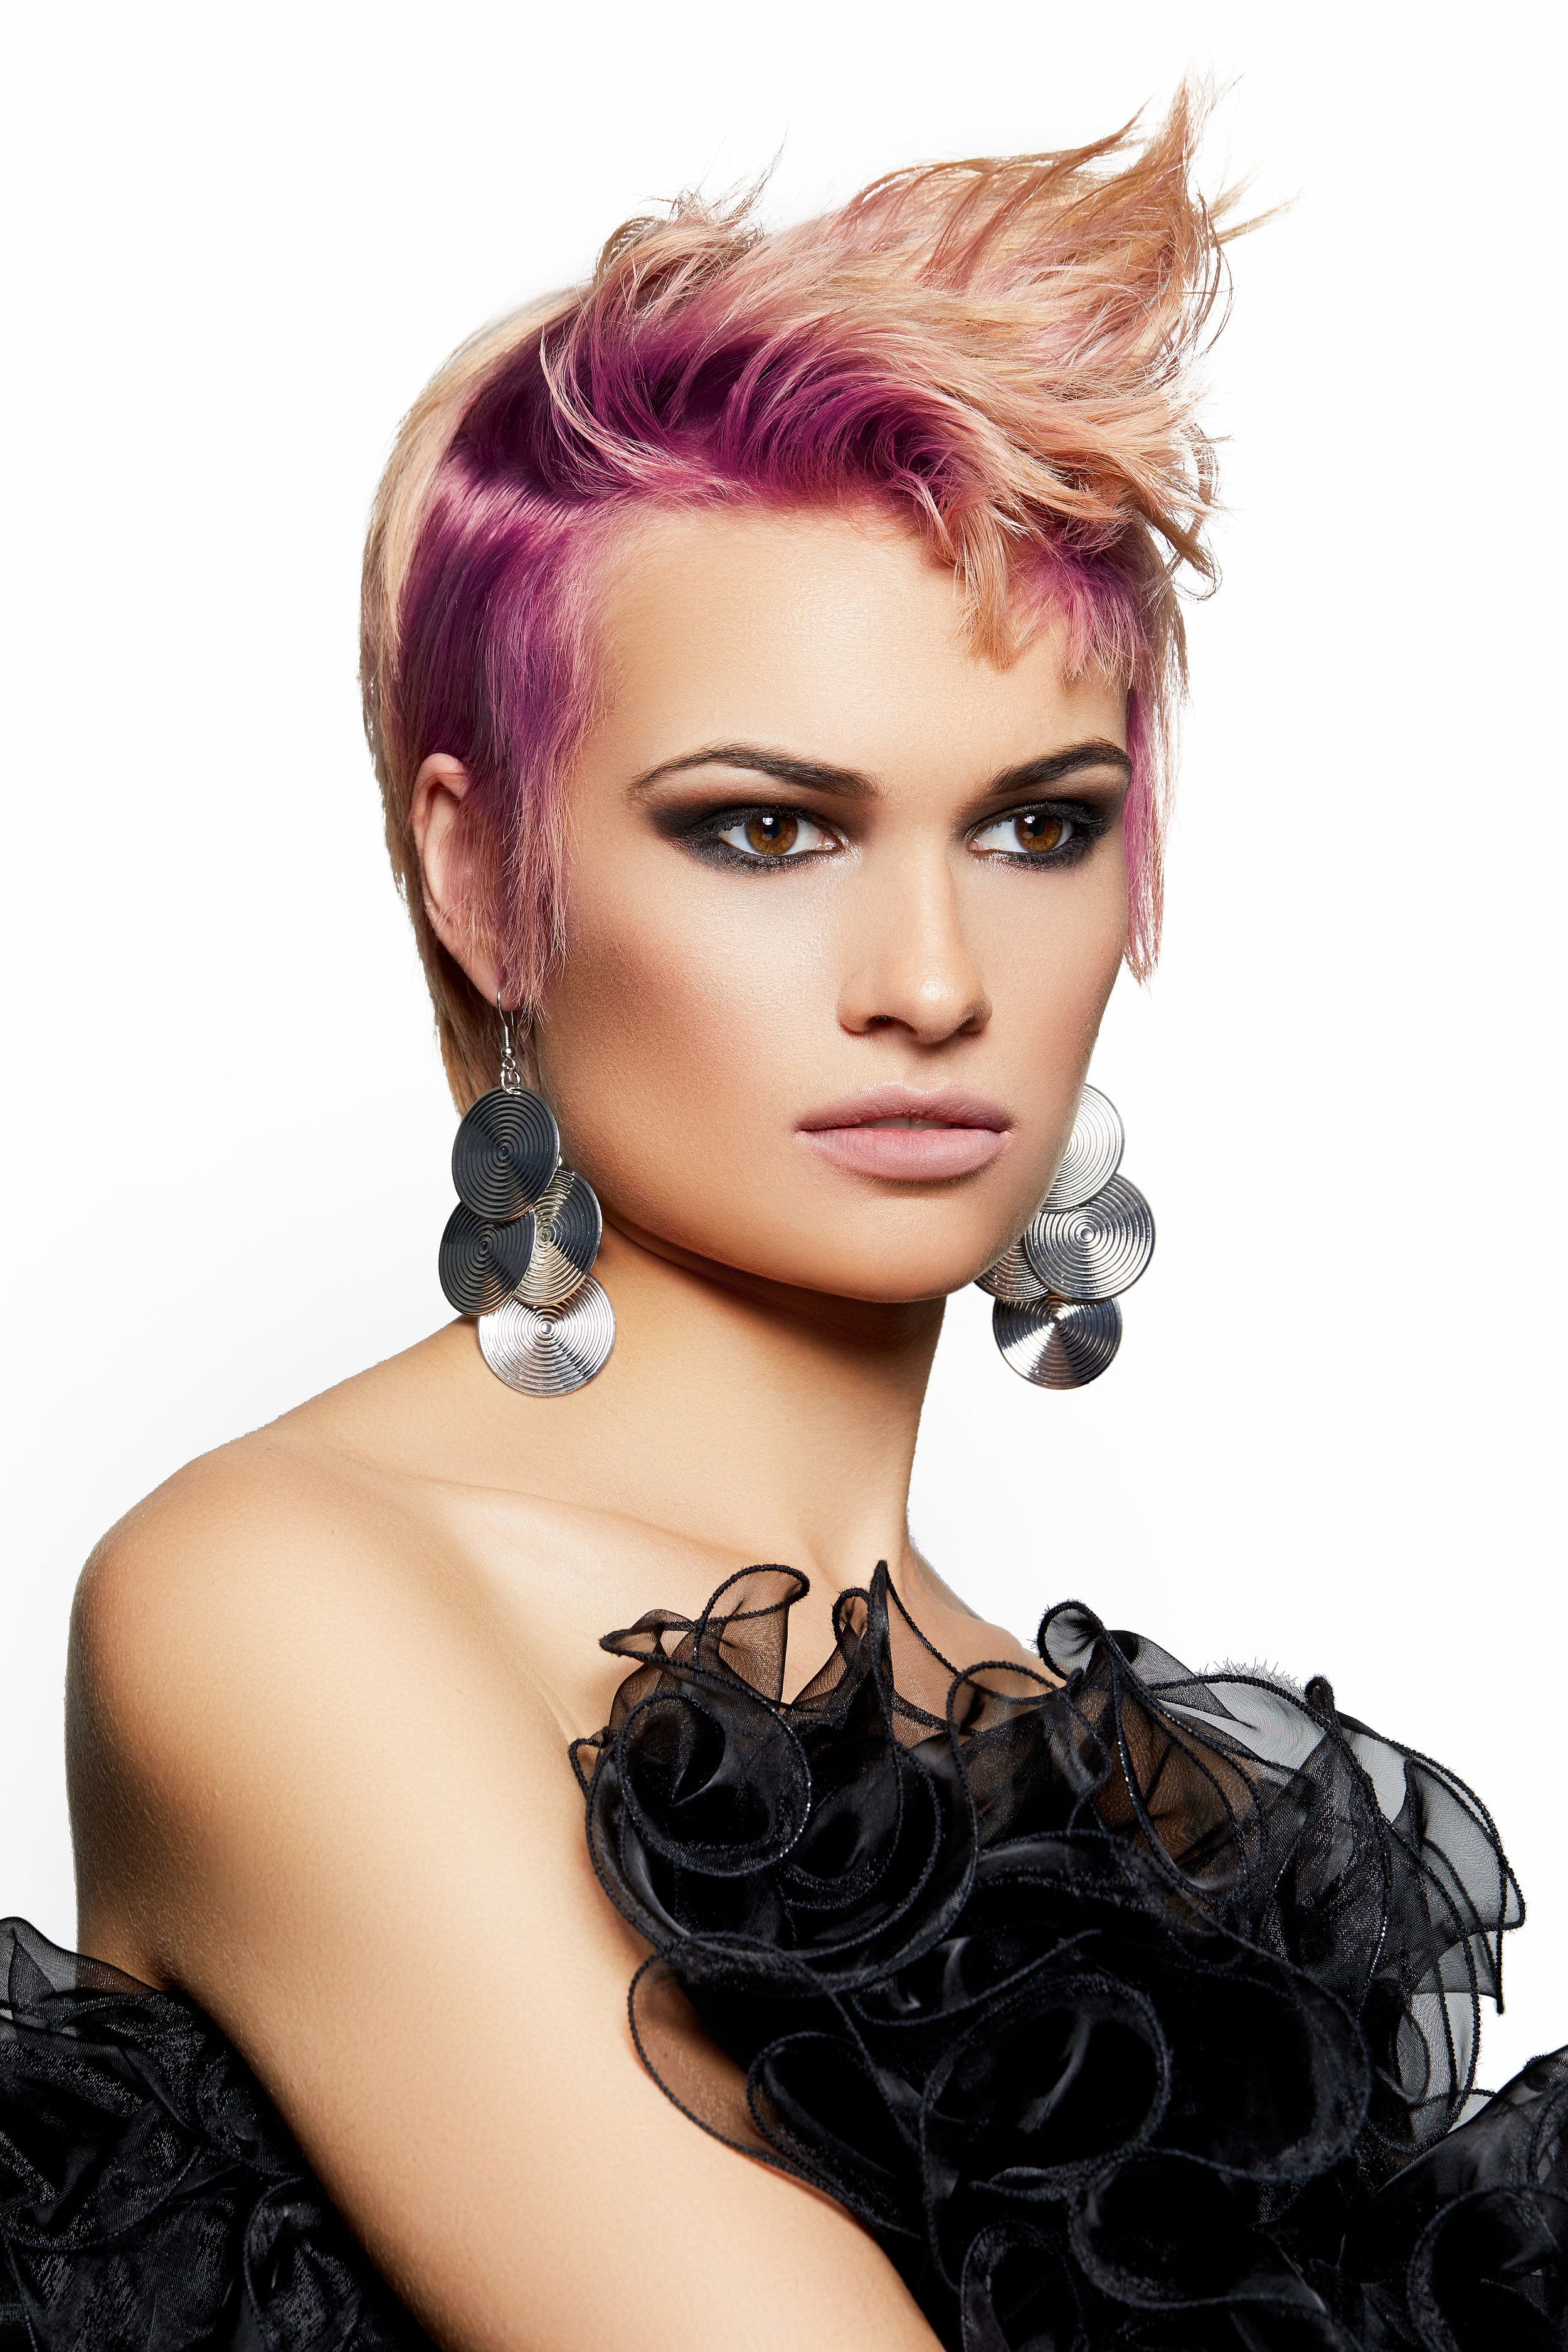 PEOPLE'S CHOICE WINNER Anthony Bayer from Anthony Bayer Hair (C10).jpg